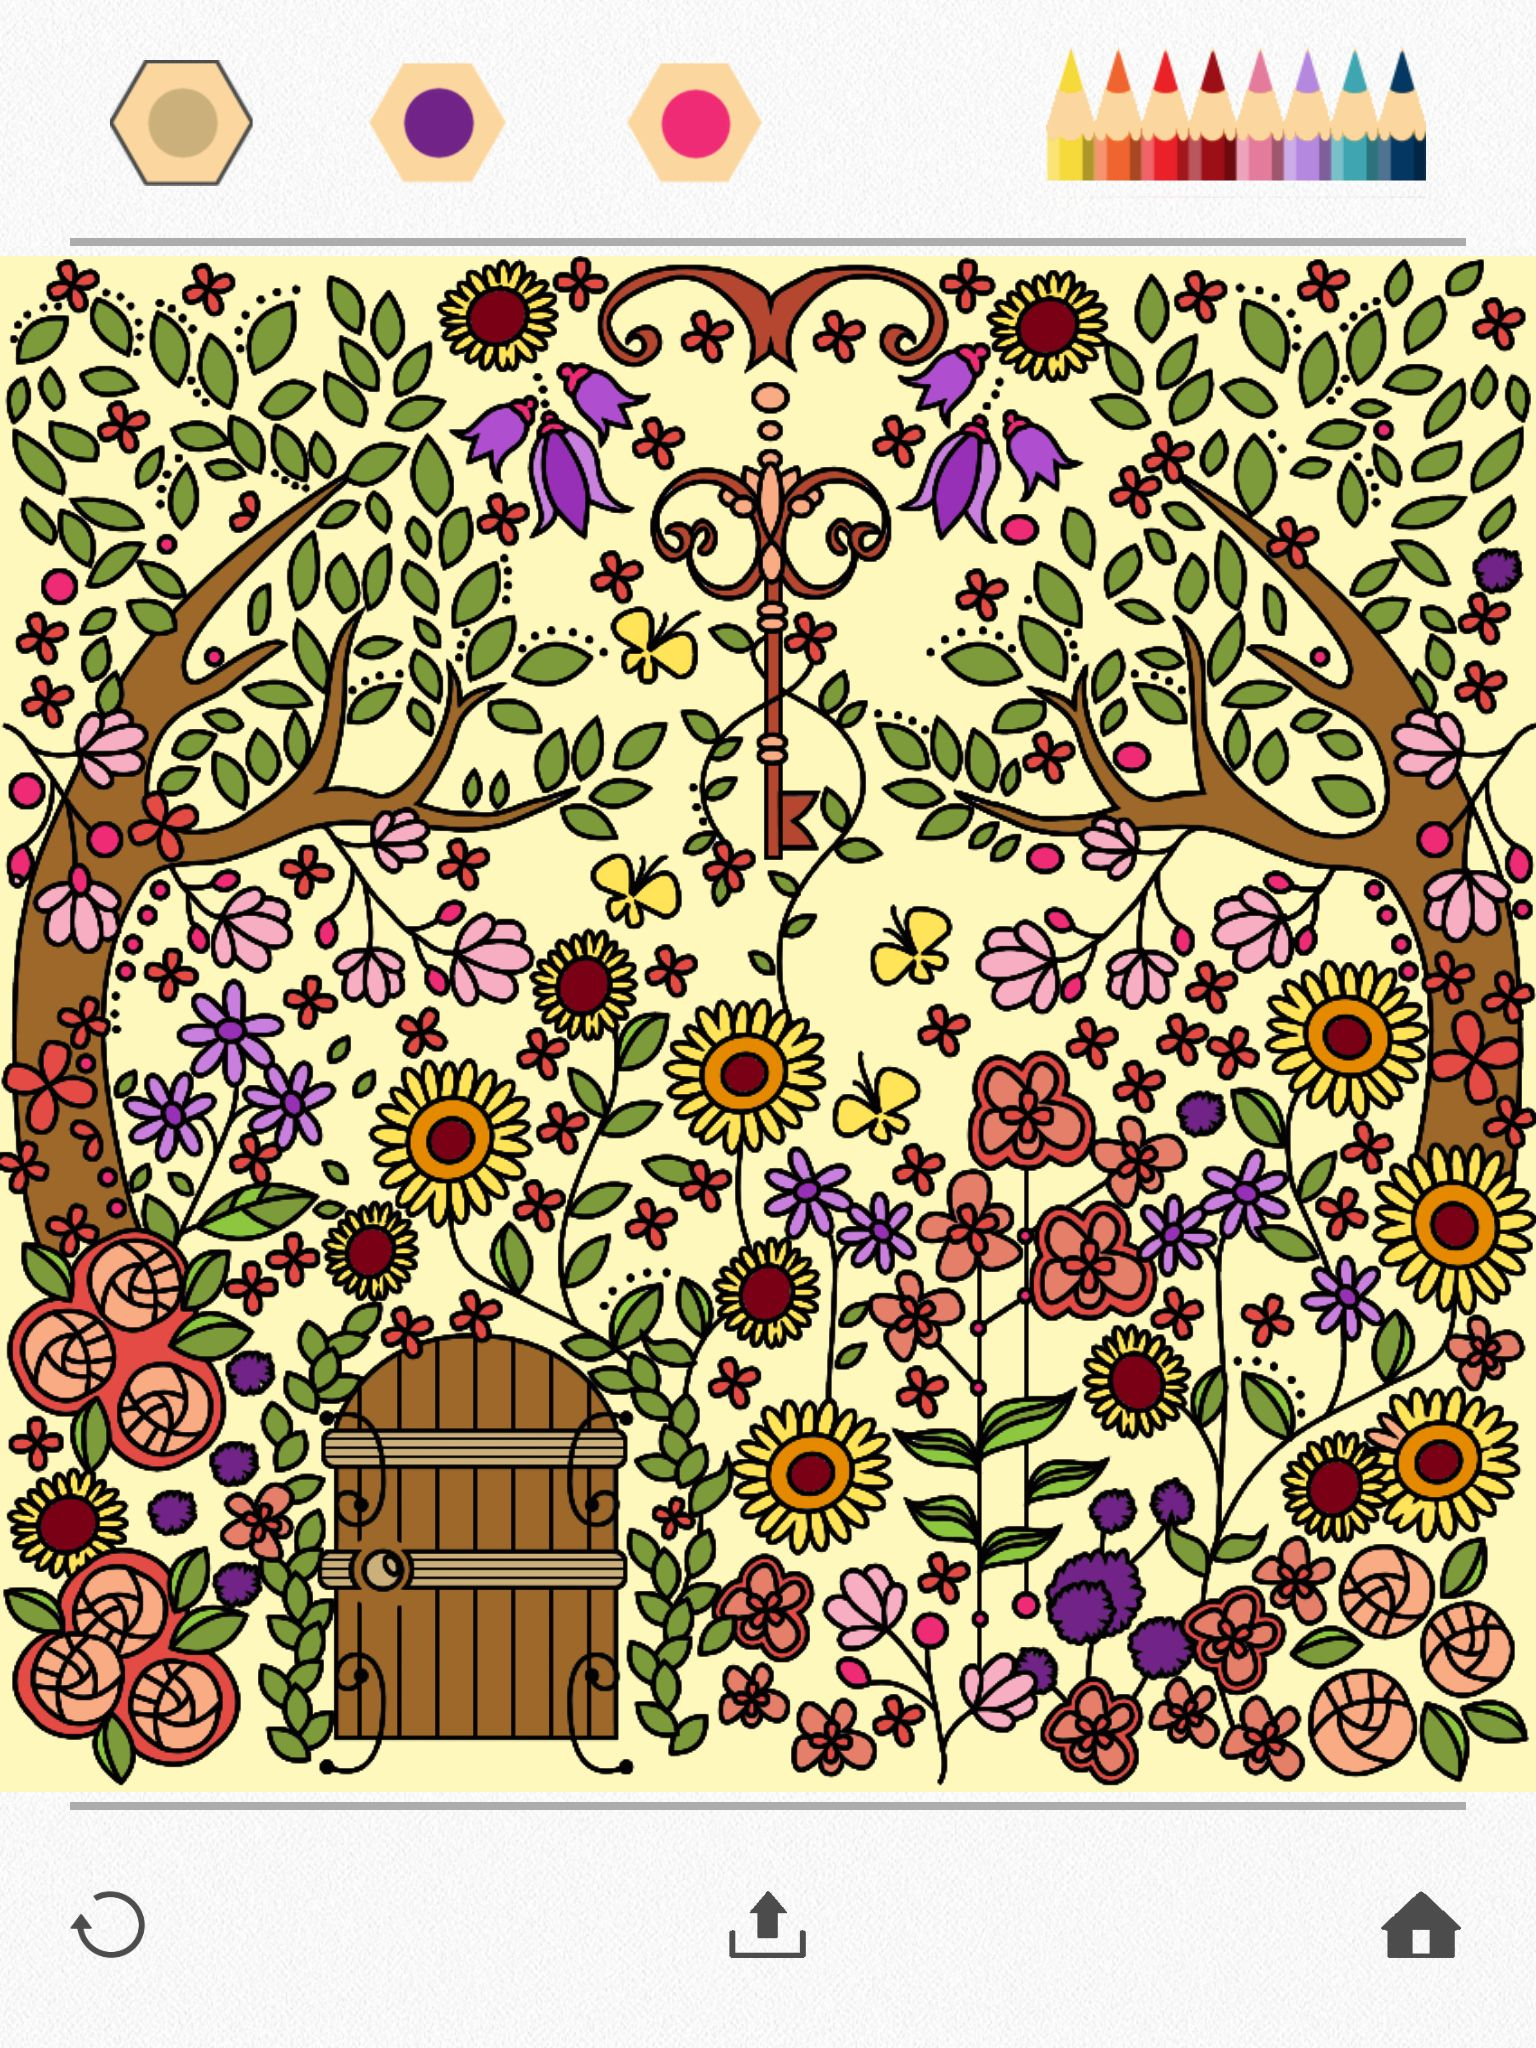 Online coloring net - Color A Beautiful Garden Using Colorfy Online Coloring Book For Adults Download It For